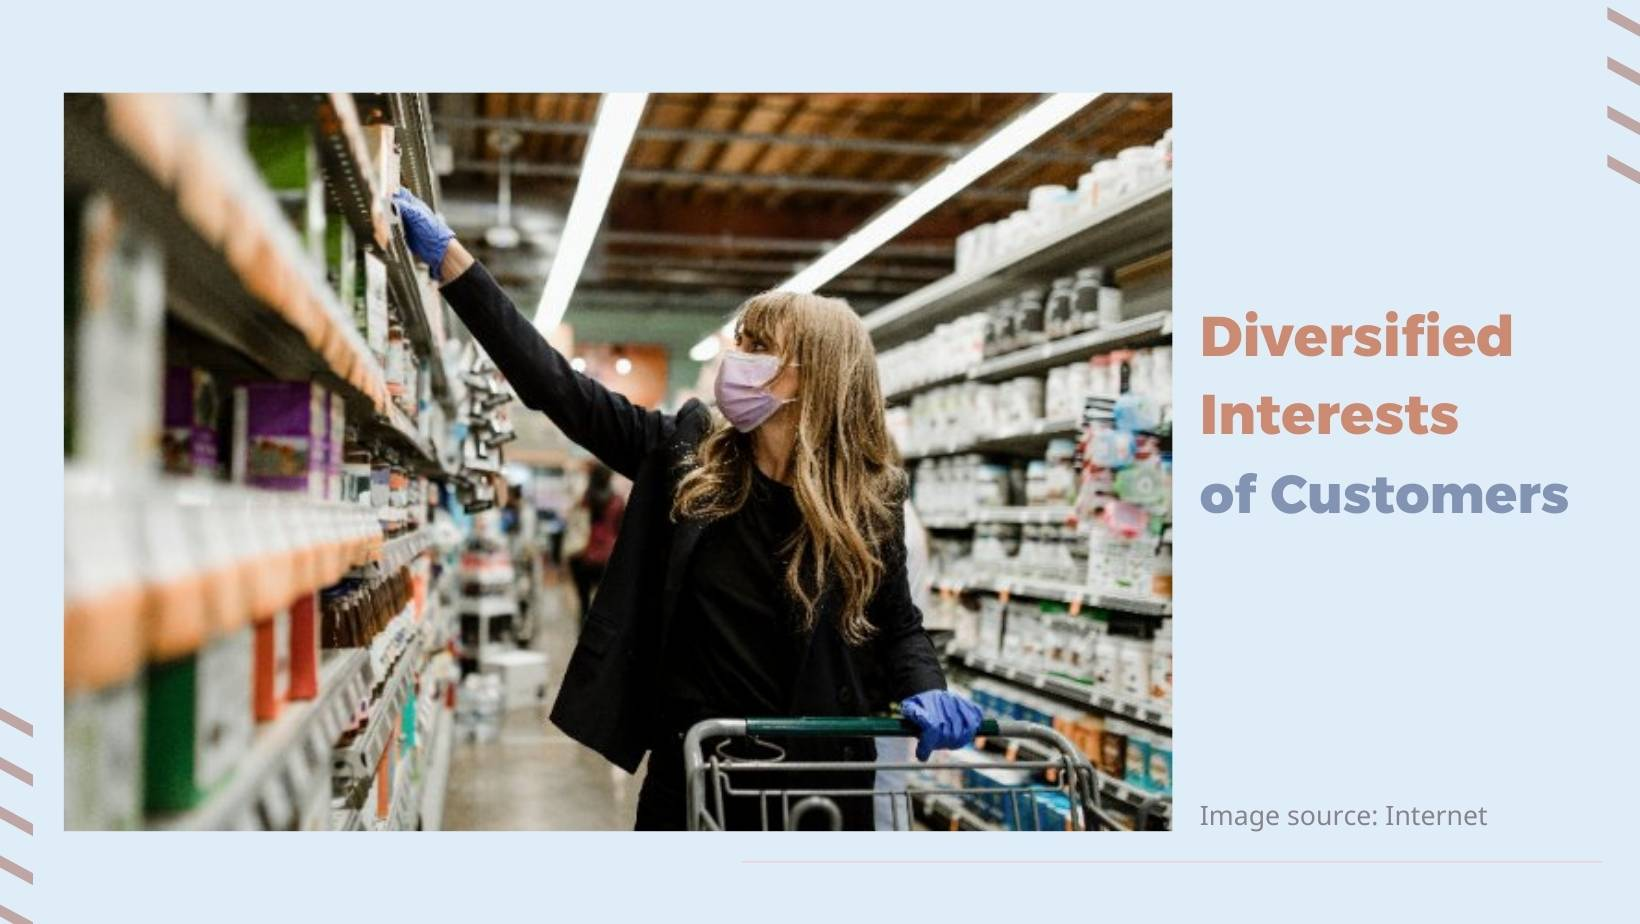 diversified interests of customers